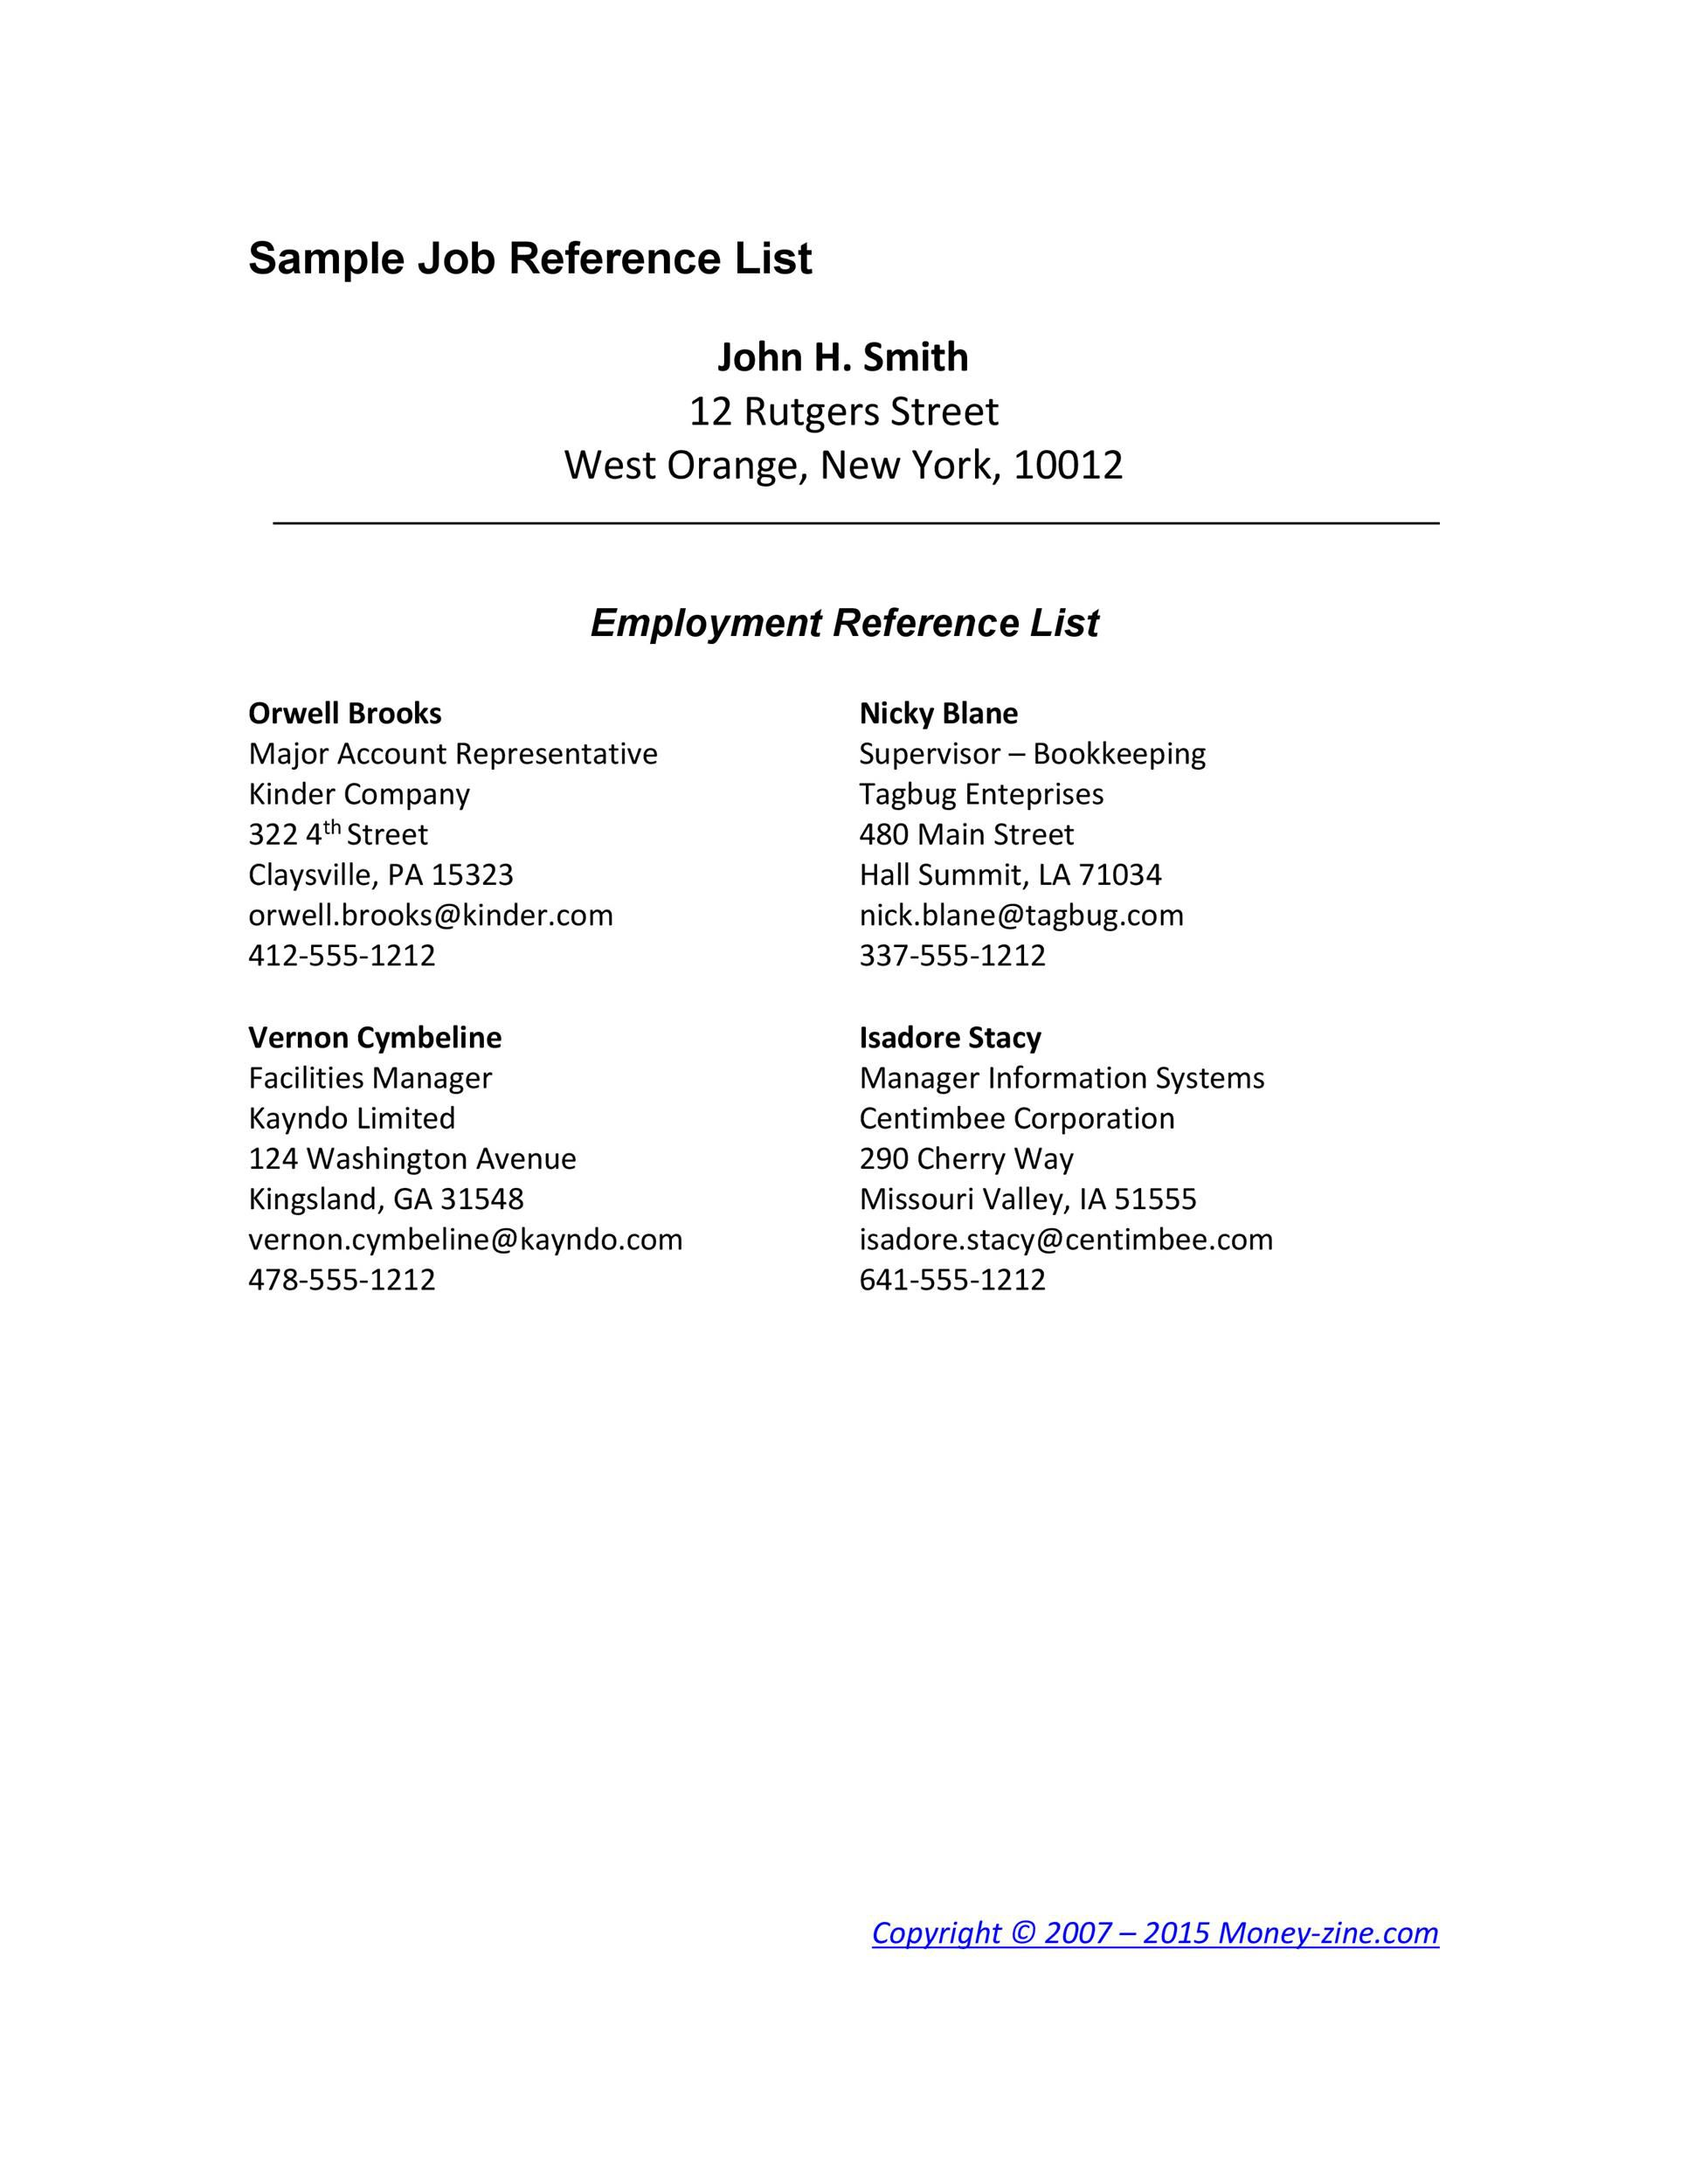 007 Unbelievable List Of Job Reference Sample Image  Format Employment TemplateFull